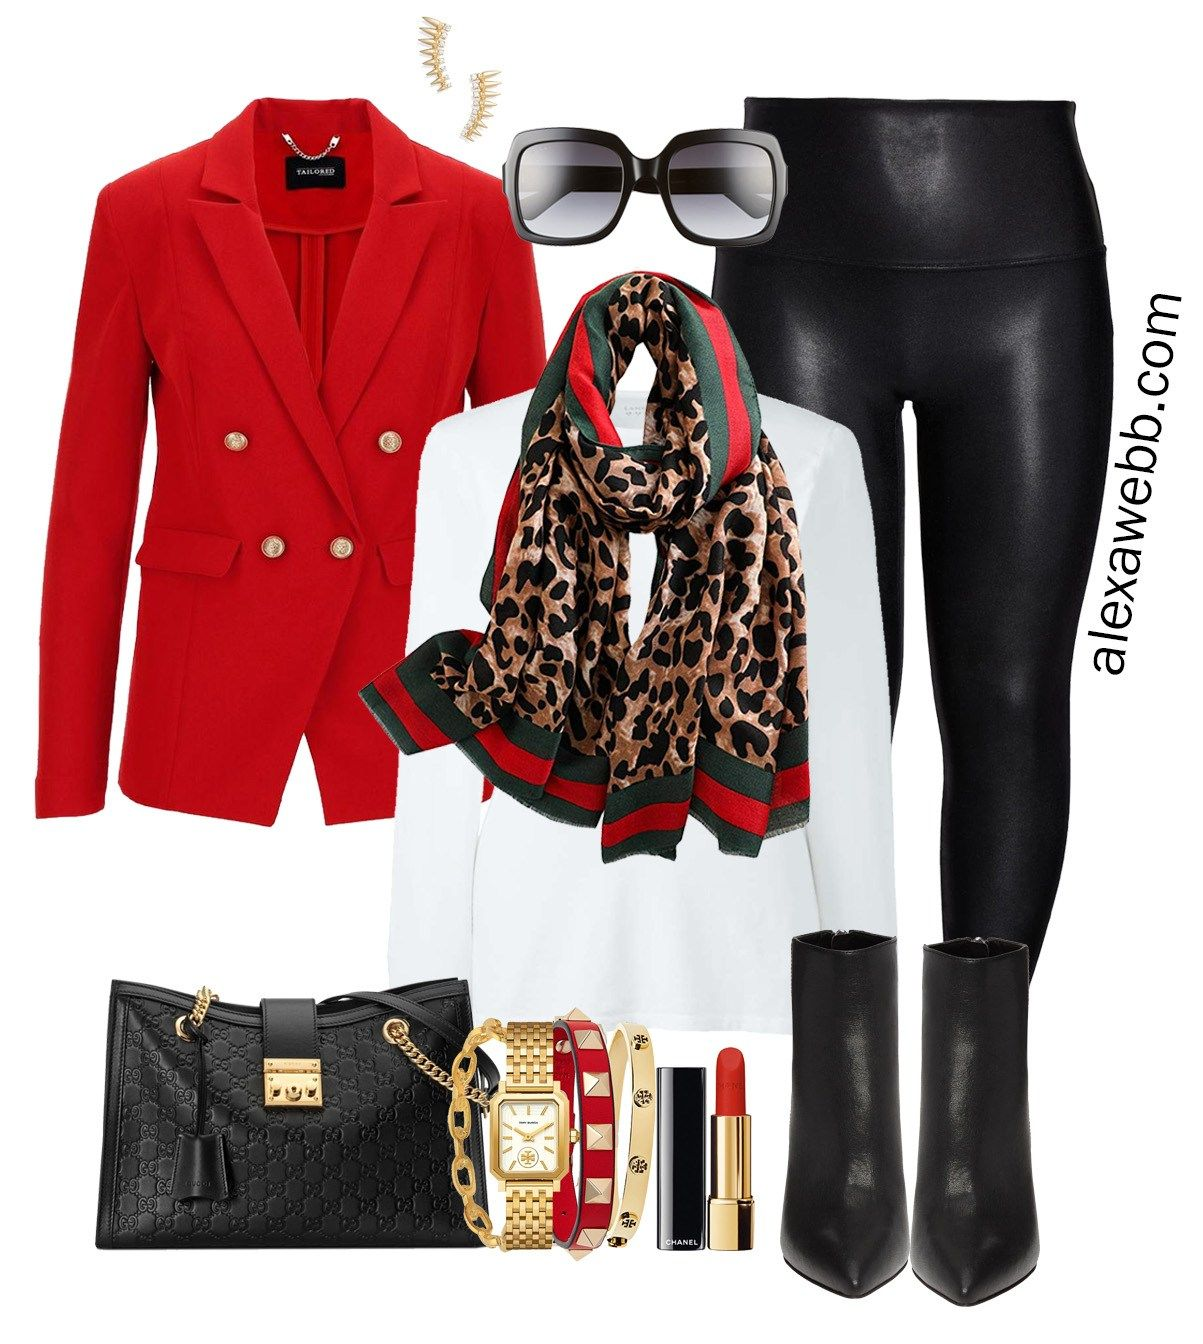 Plus Size Gucci Scarf Outfits Part 1 Alexa Webb in